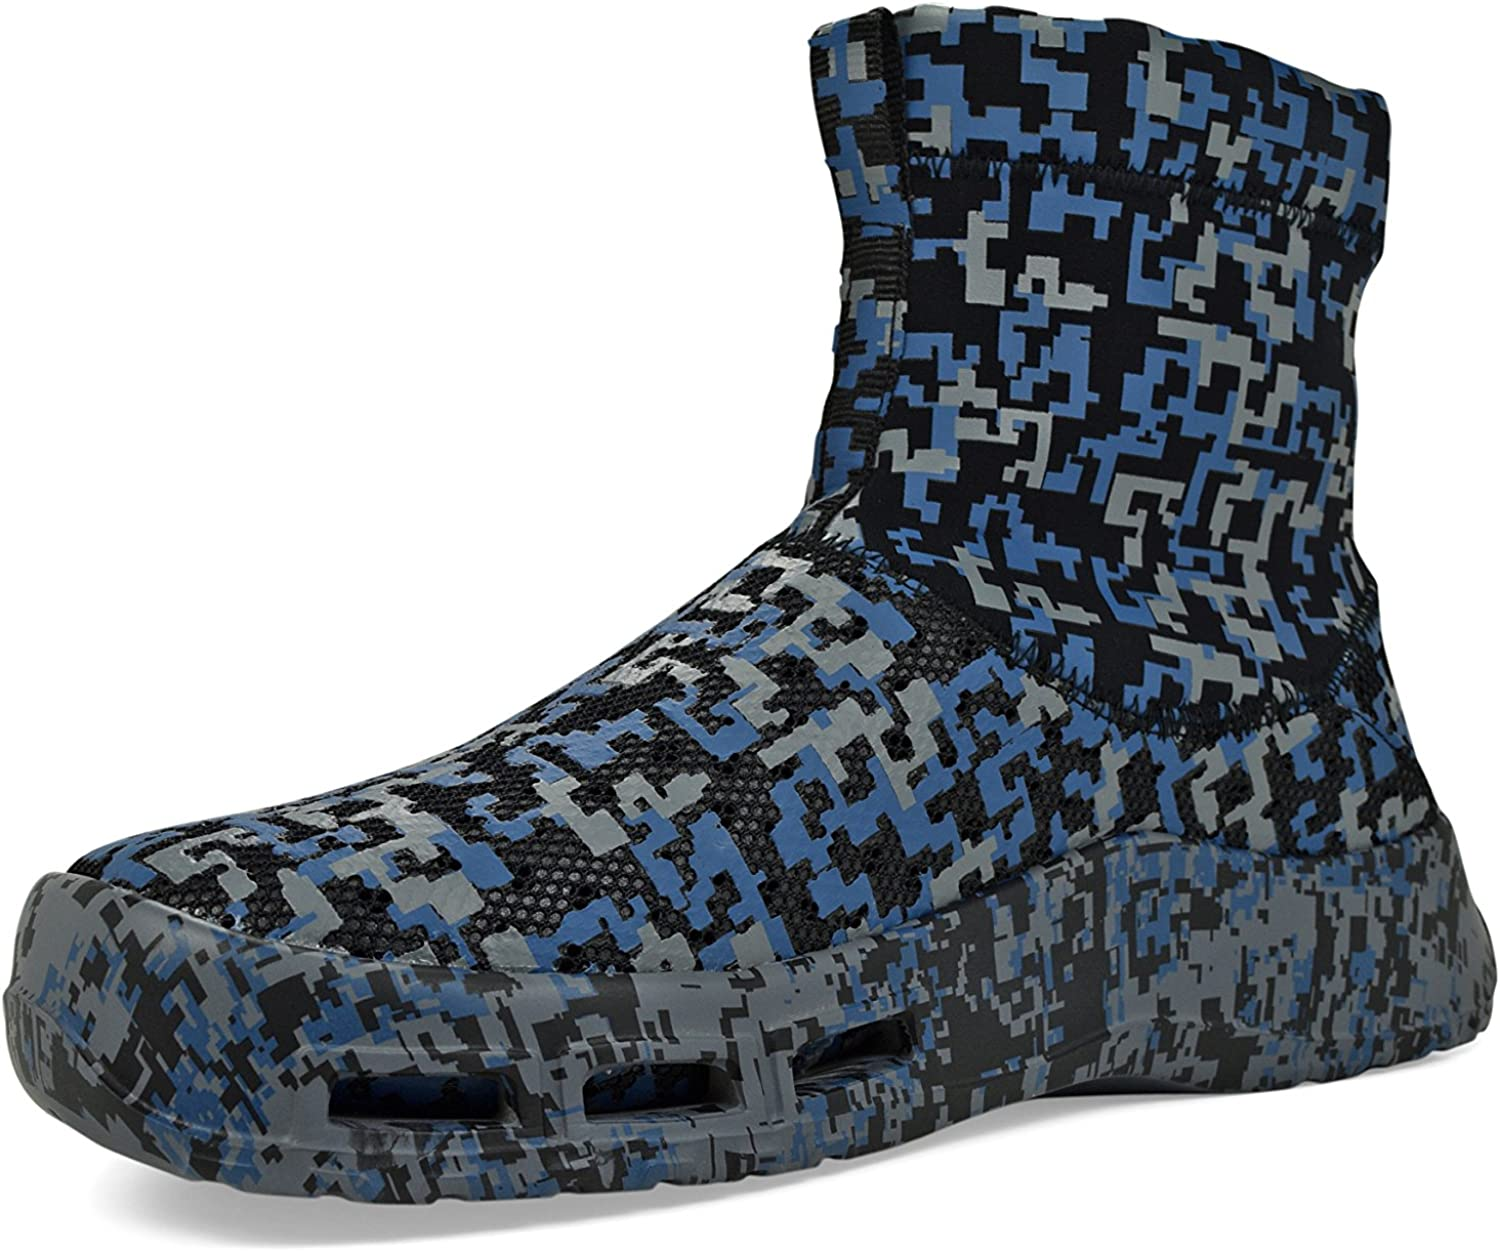 Soft Science The Fin Boot Comfort Performance Male shoes